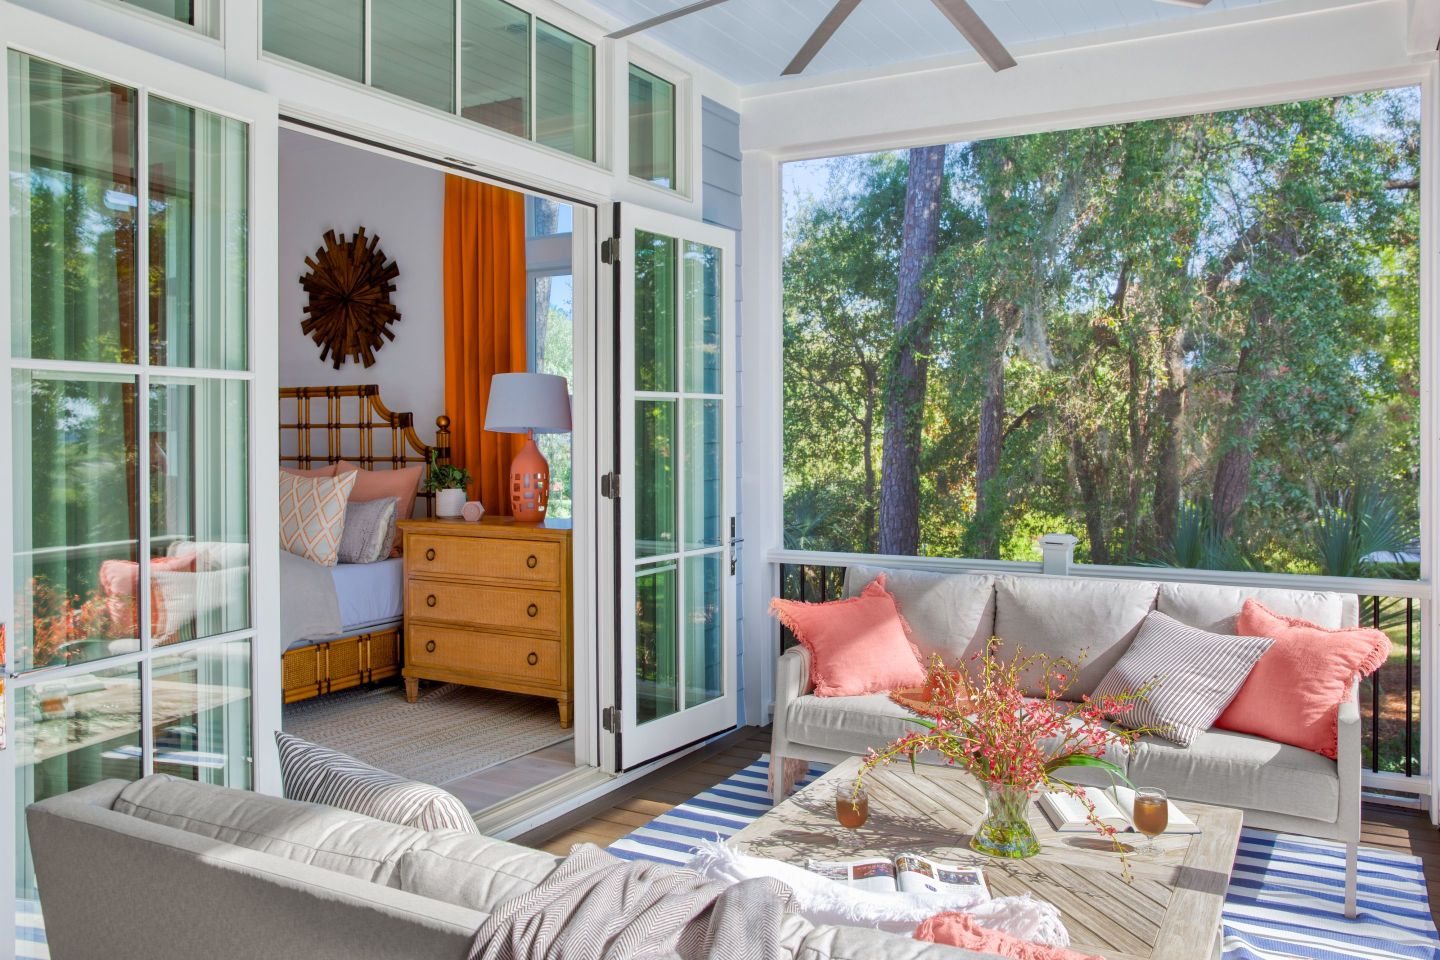 HGTV-Dream-Home-2020-Master-Bedroom-2 Lowcountry Vacation Home Style in Hilton Head with HGTV Dream Home 2020